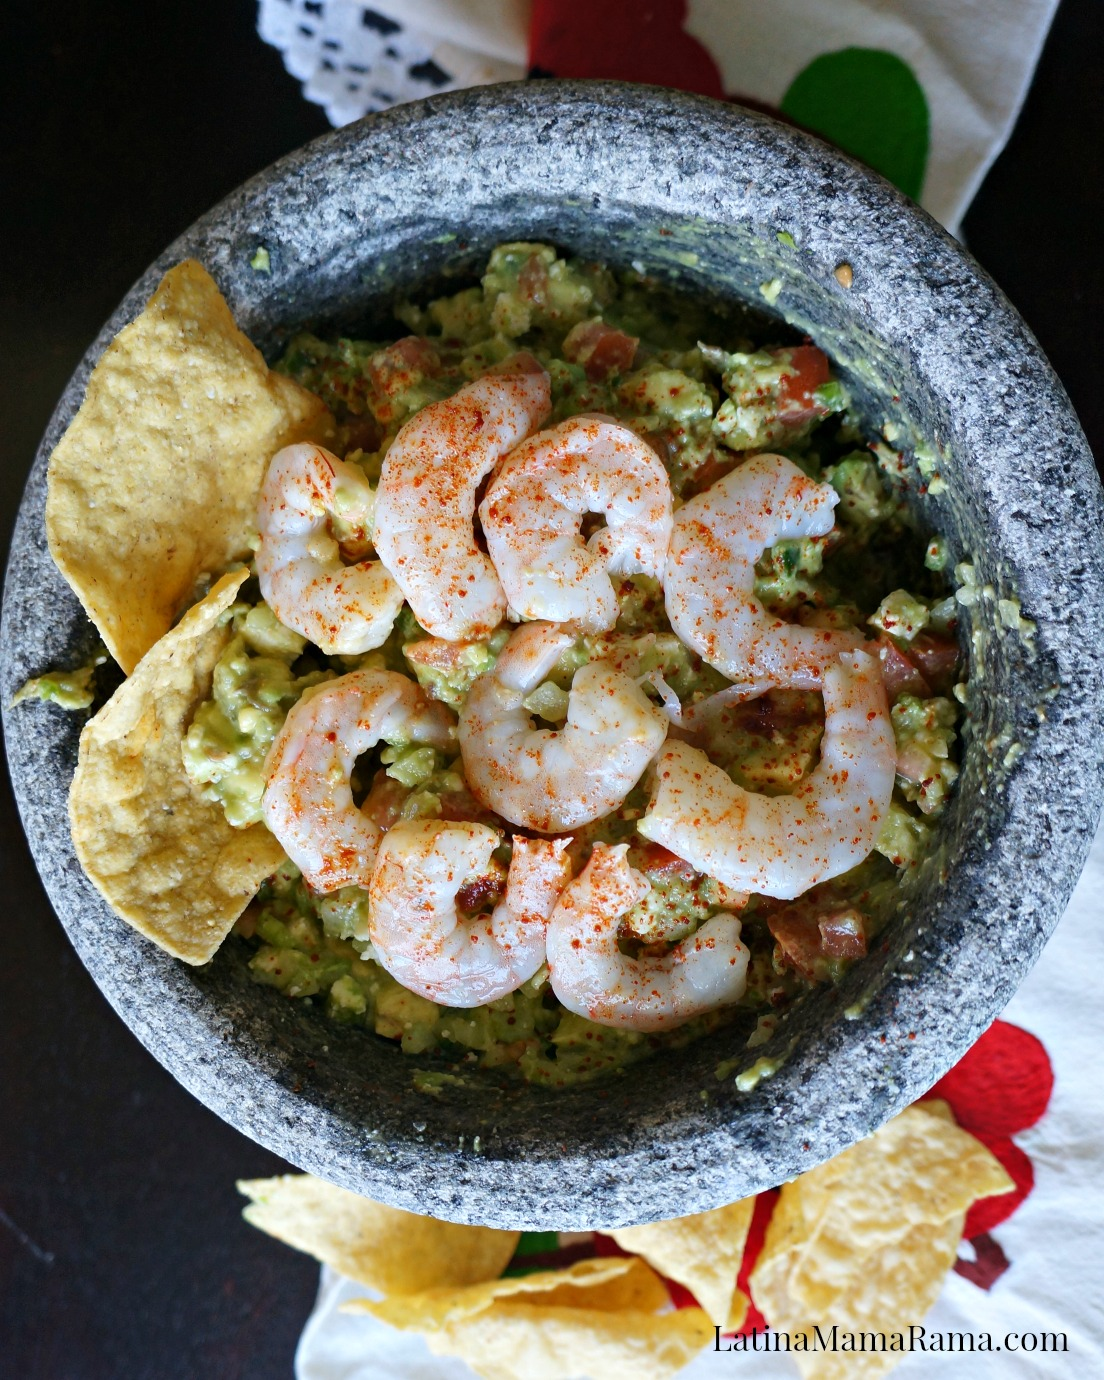 Enjoy making the best guacamole recipe ever! Serve with some chips and ...